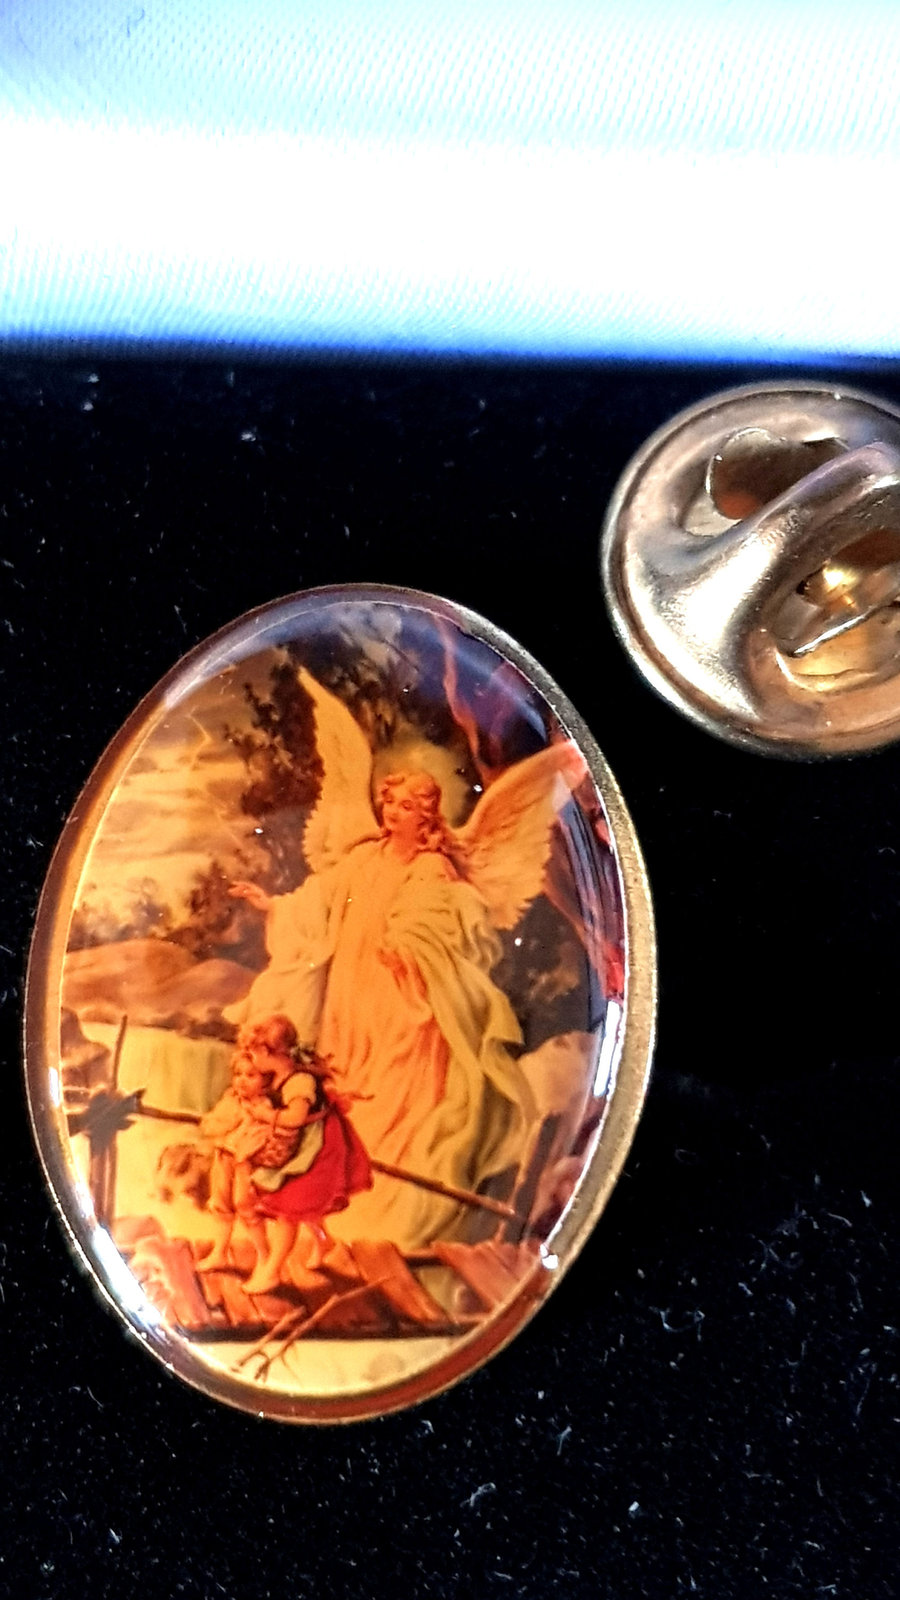 vintage cameo guardian angel, from usa Metal Enamel Badge Lapel /tie Pin Badge